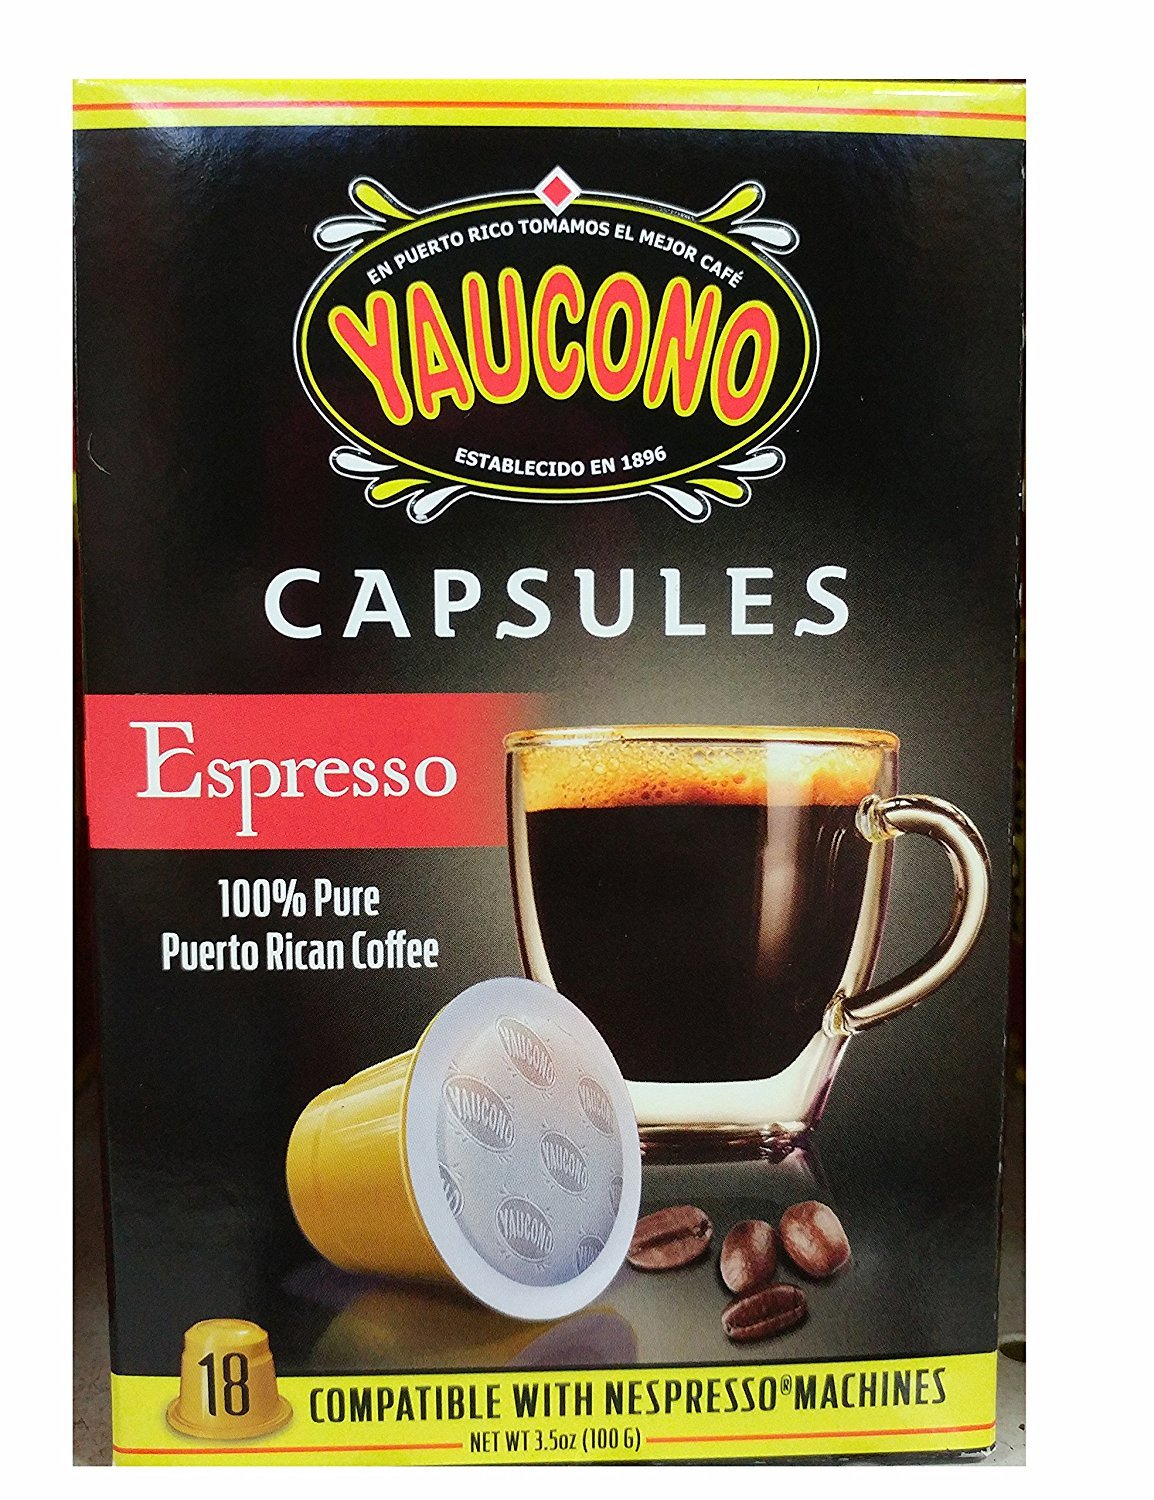 Amazon.com : Yaucono Espresso Puerto Rican Coffee Capsules for Machines (18 Capsule Box) : Grocery & Gourmet Food